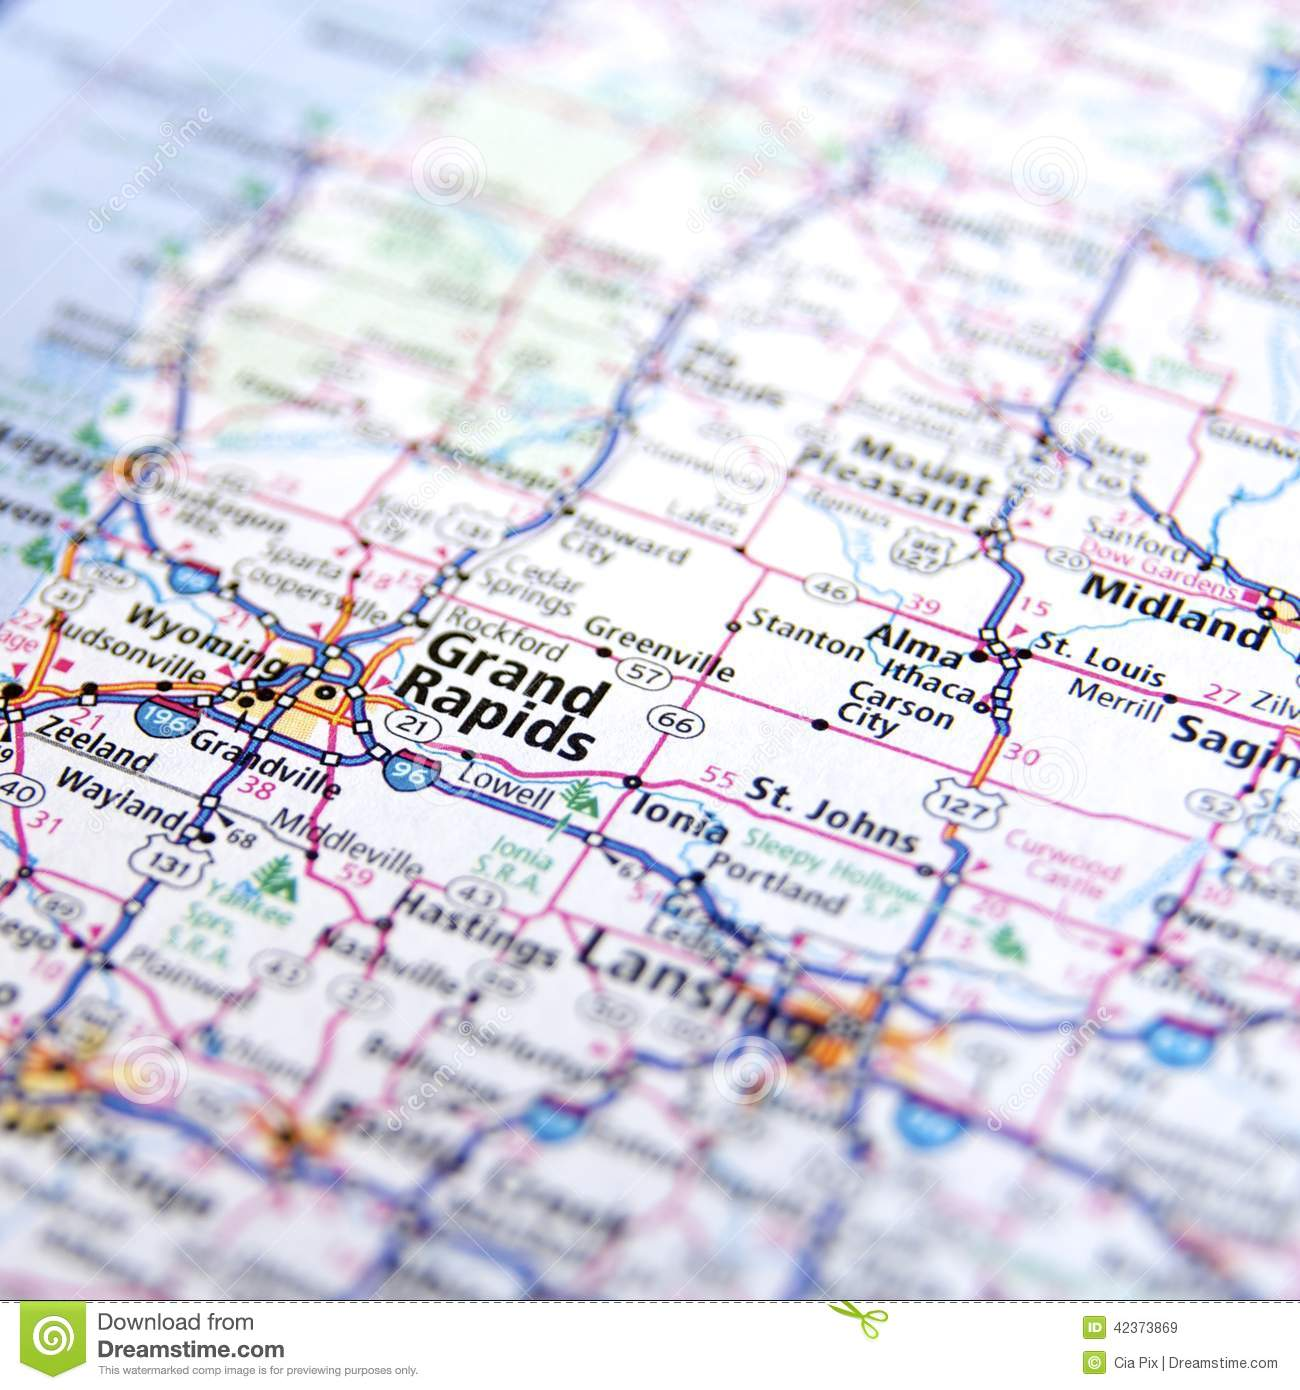 michigan highway map close up